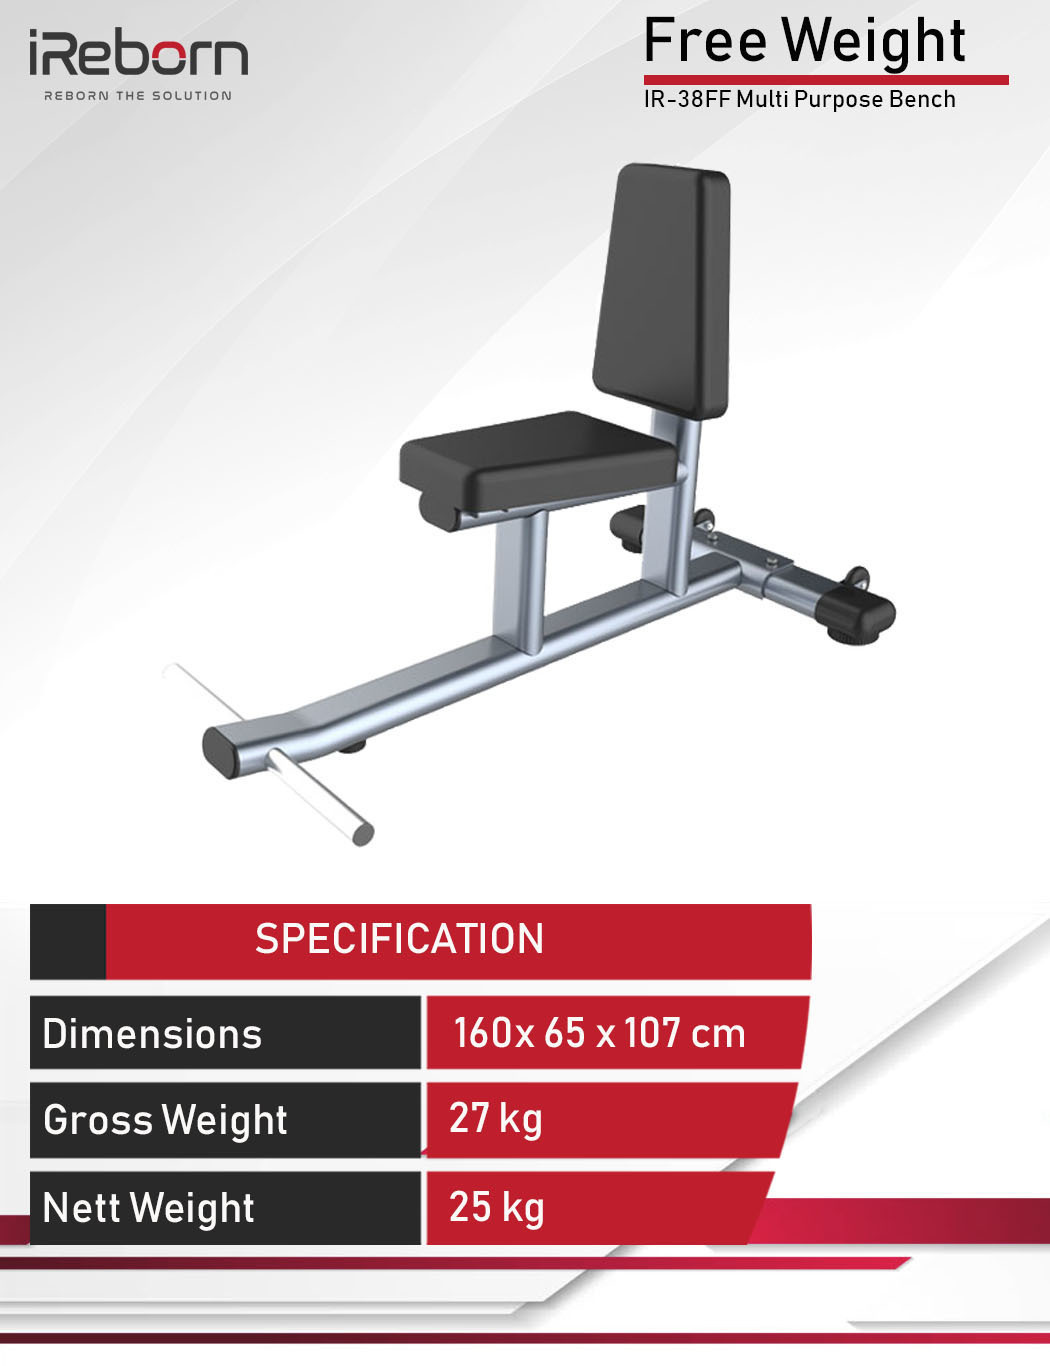 IR-38FF Multi Purpose Bench 8